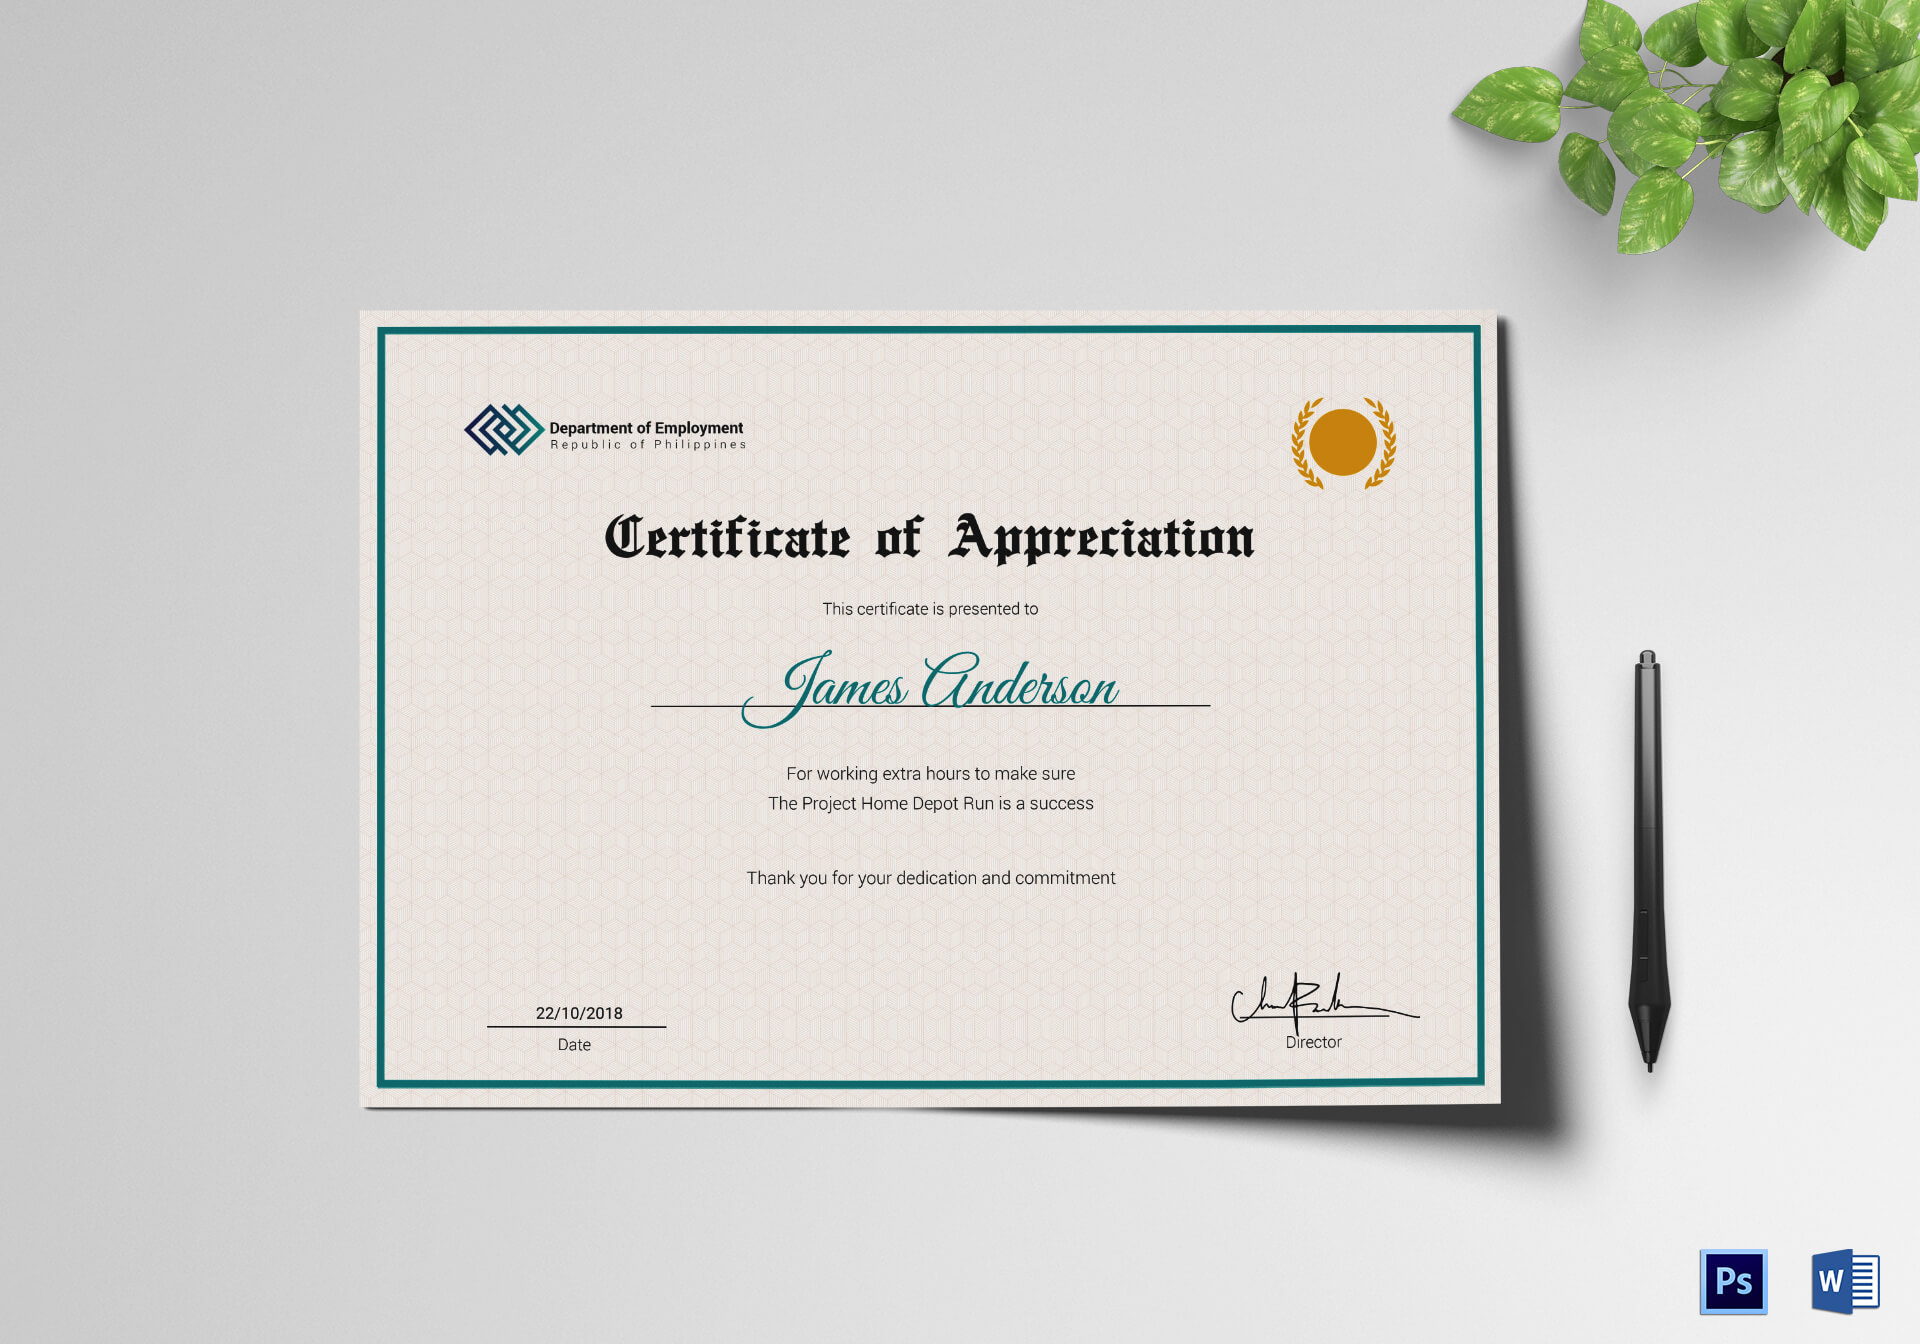 Employee Service Certificate Template With Regard To Employee Certificate Of Service Template